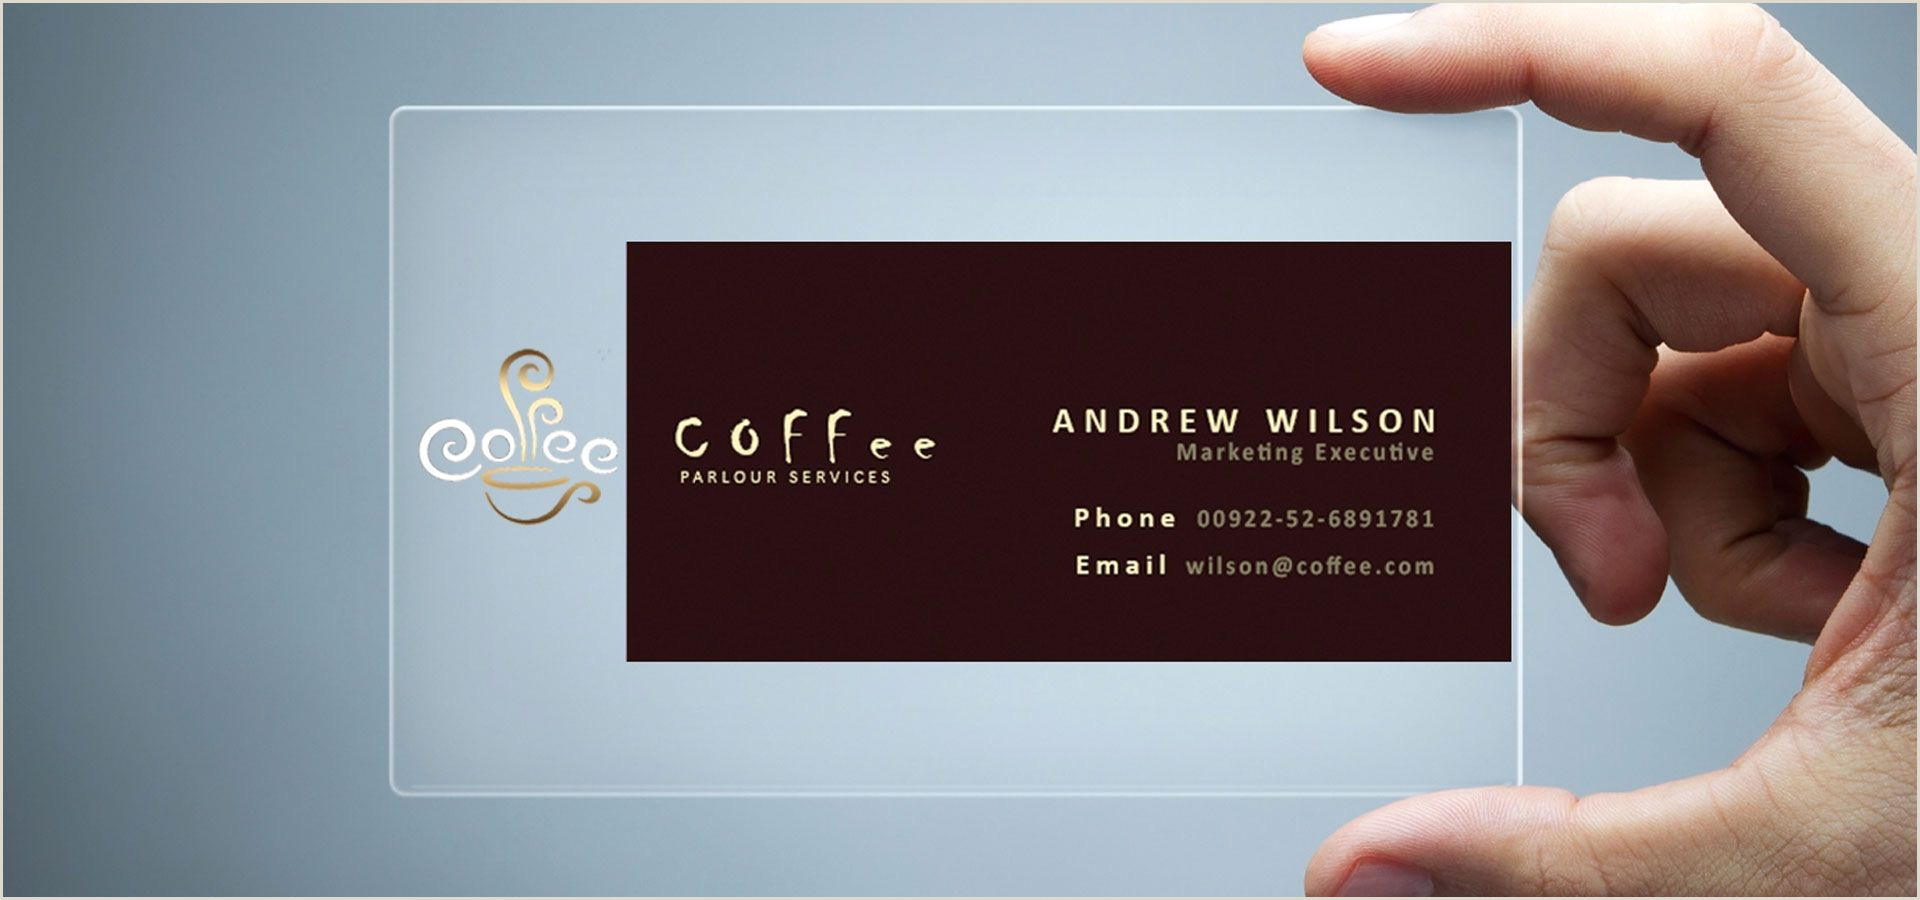 Illustrators Business Cards The Breathtaking 023 Template Ideas Business Card